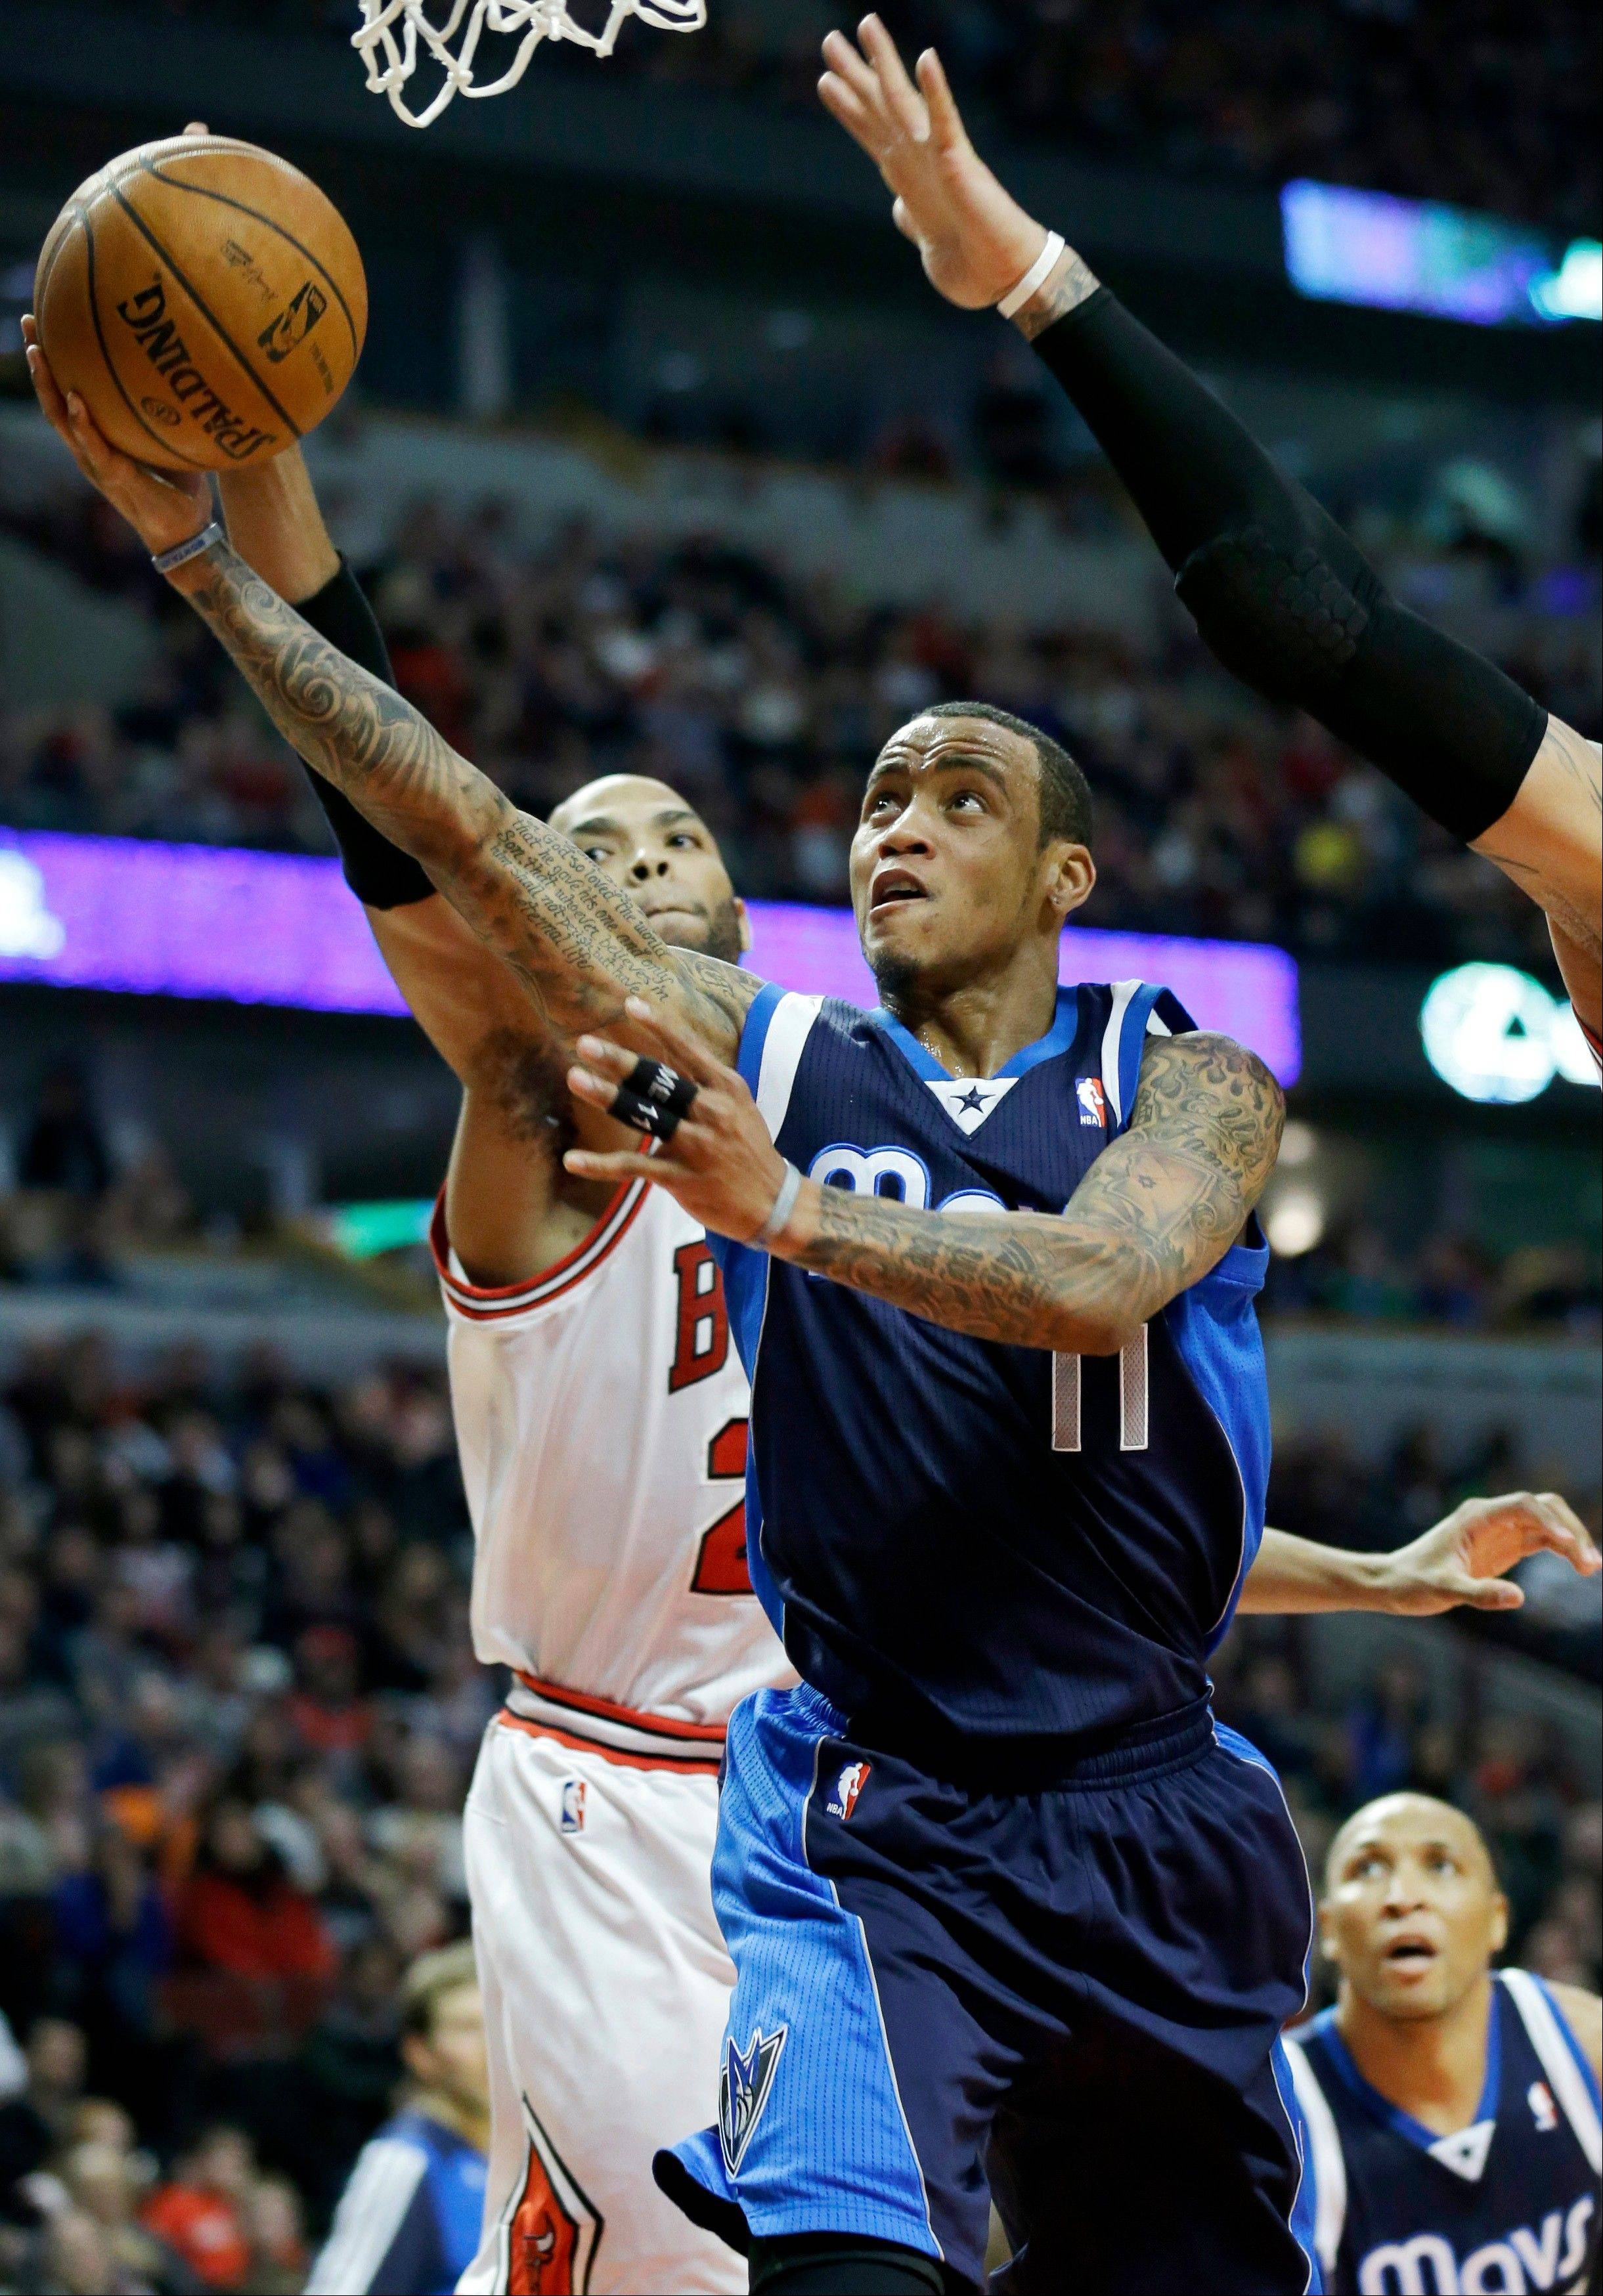 Dallas Mavericks guard Monta Ellis (11) drives to the basket against Chicago Bulls forward Taj Gibson during the first half of an NBA basketball game in Chicago on Saturday, Dec. 28, 2013. (AP Photo/Nam Y. Huh)